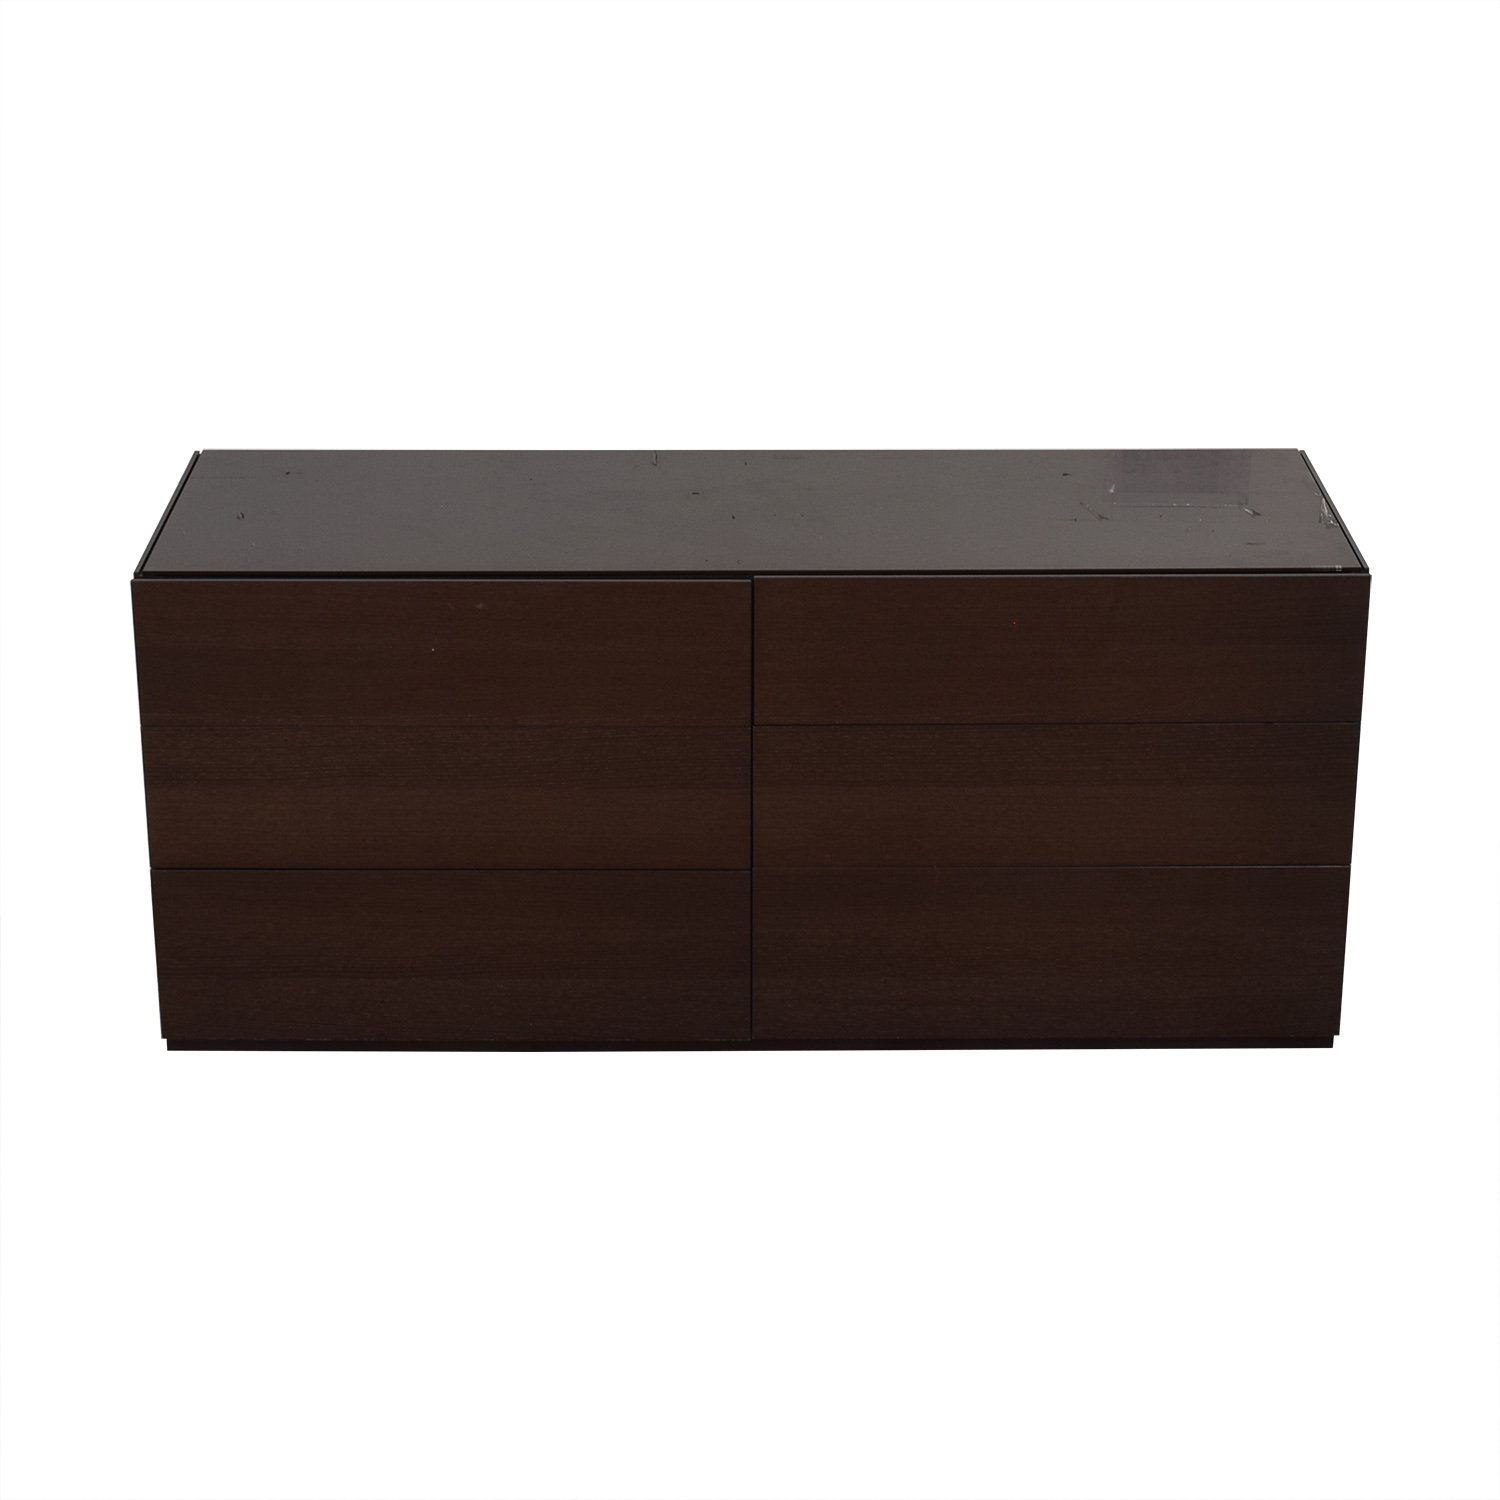 Calligaris Six-Drawer Dresser with Glass Protective Top sale